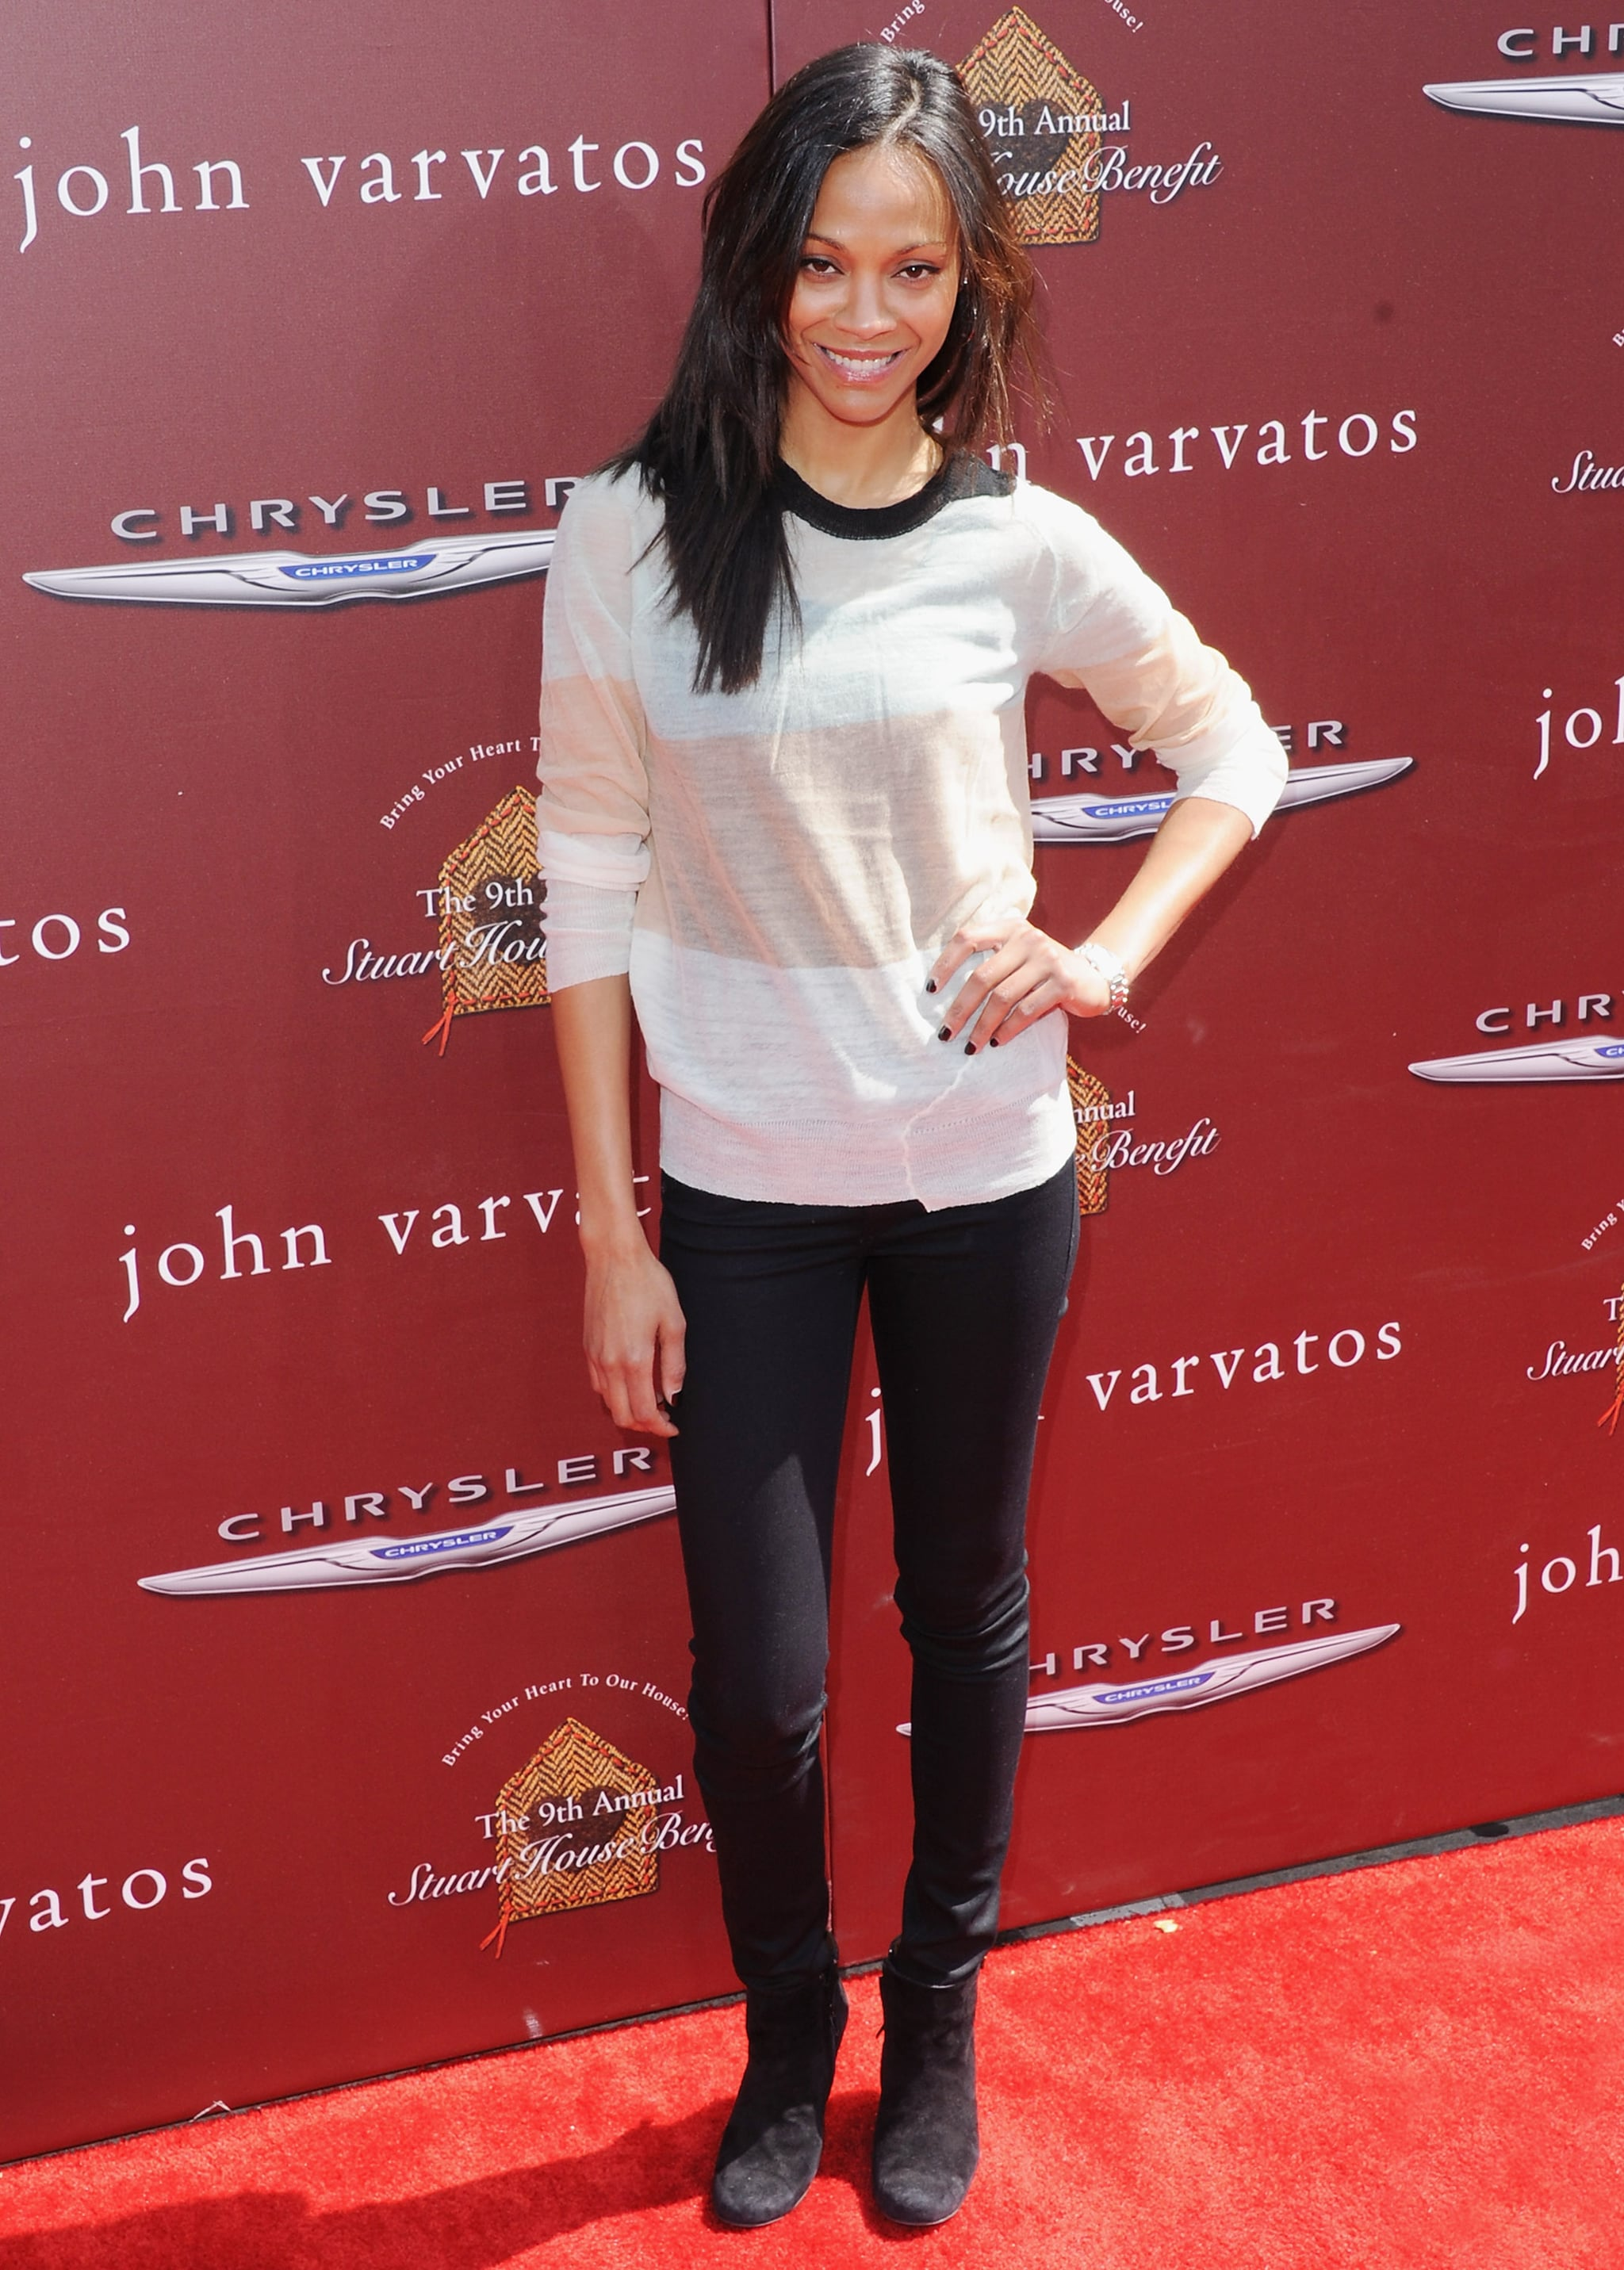 Showing off her casual sense of style, Zoe stepped out in a semisheer striped A.L.C. sweater with black skinny jeans and black boots at the John Varvatos ninth annual Stuart House benefit in 2012.